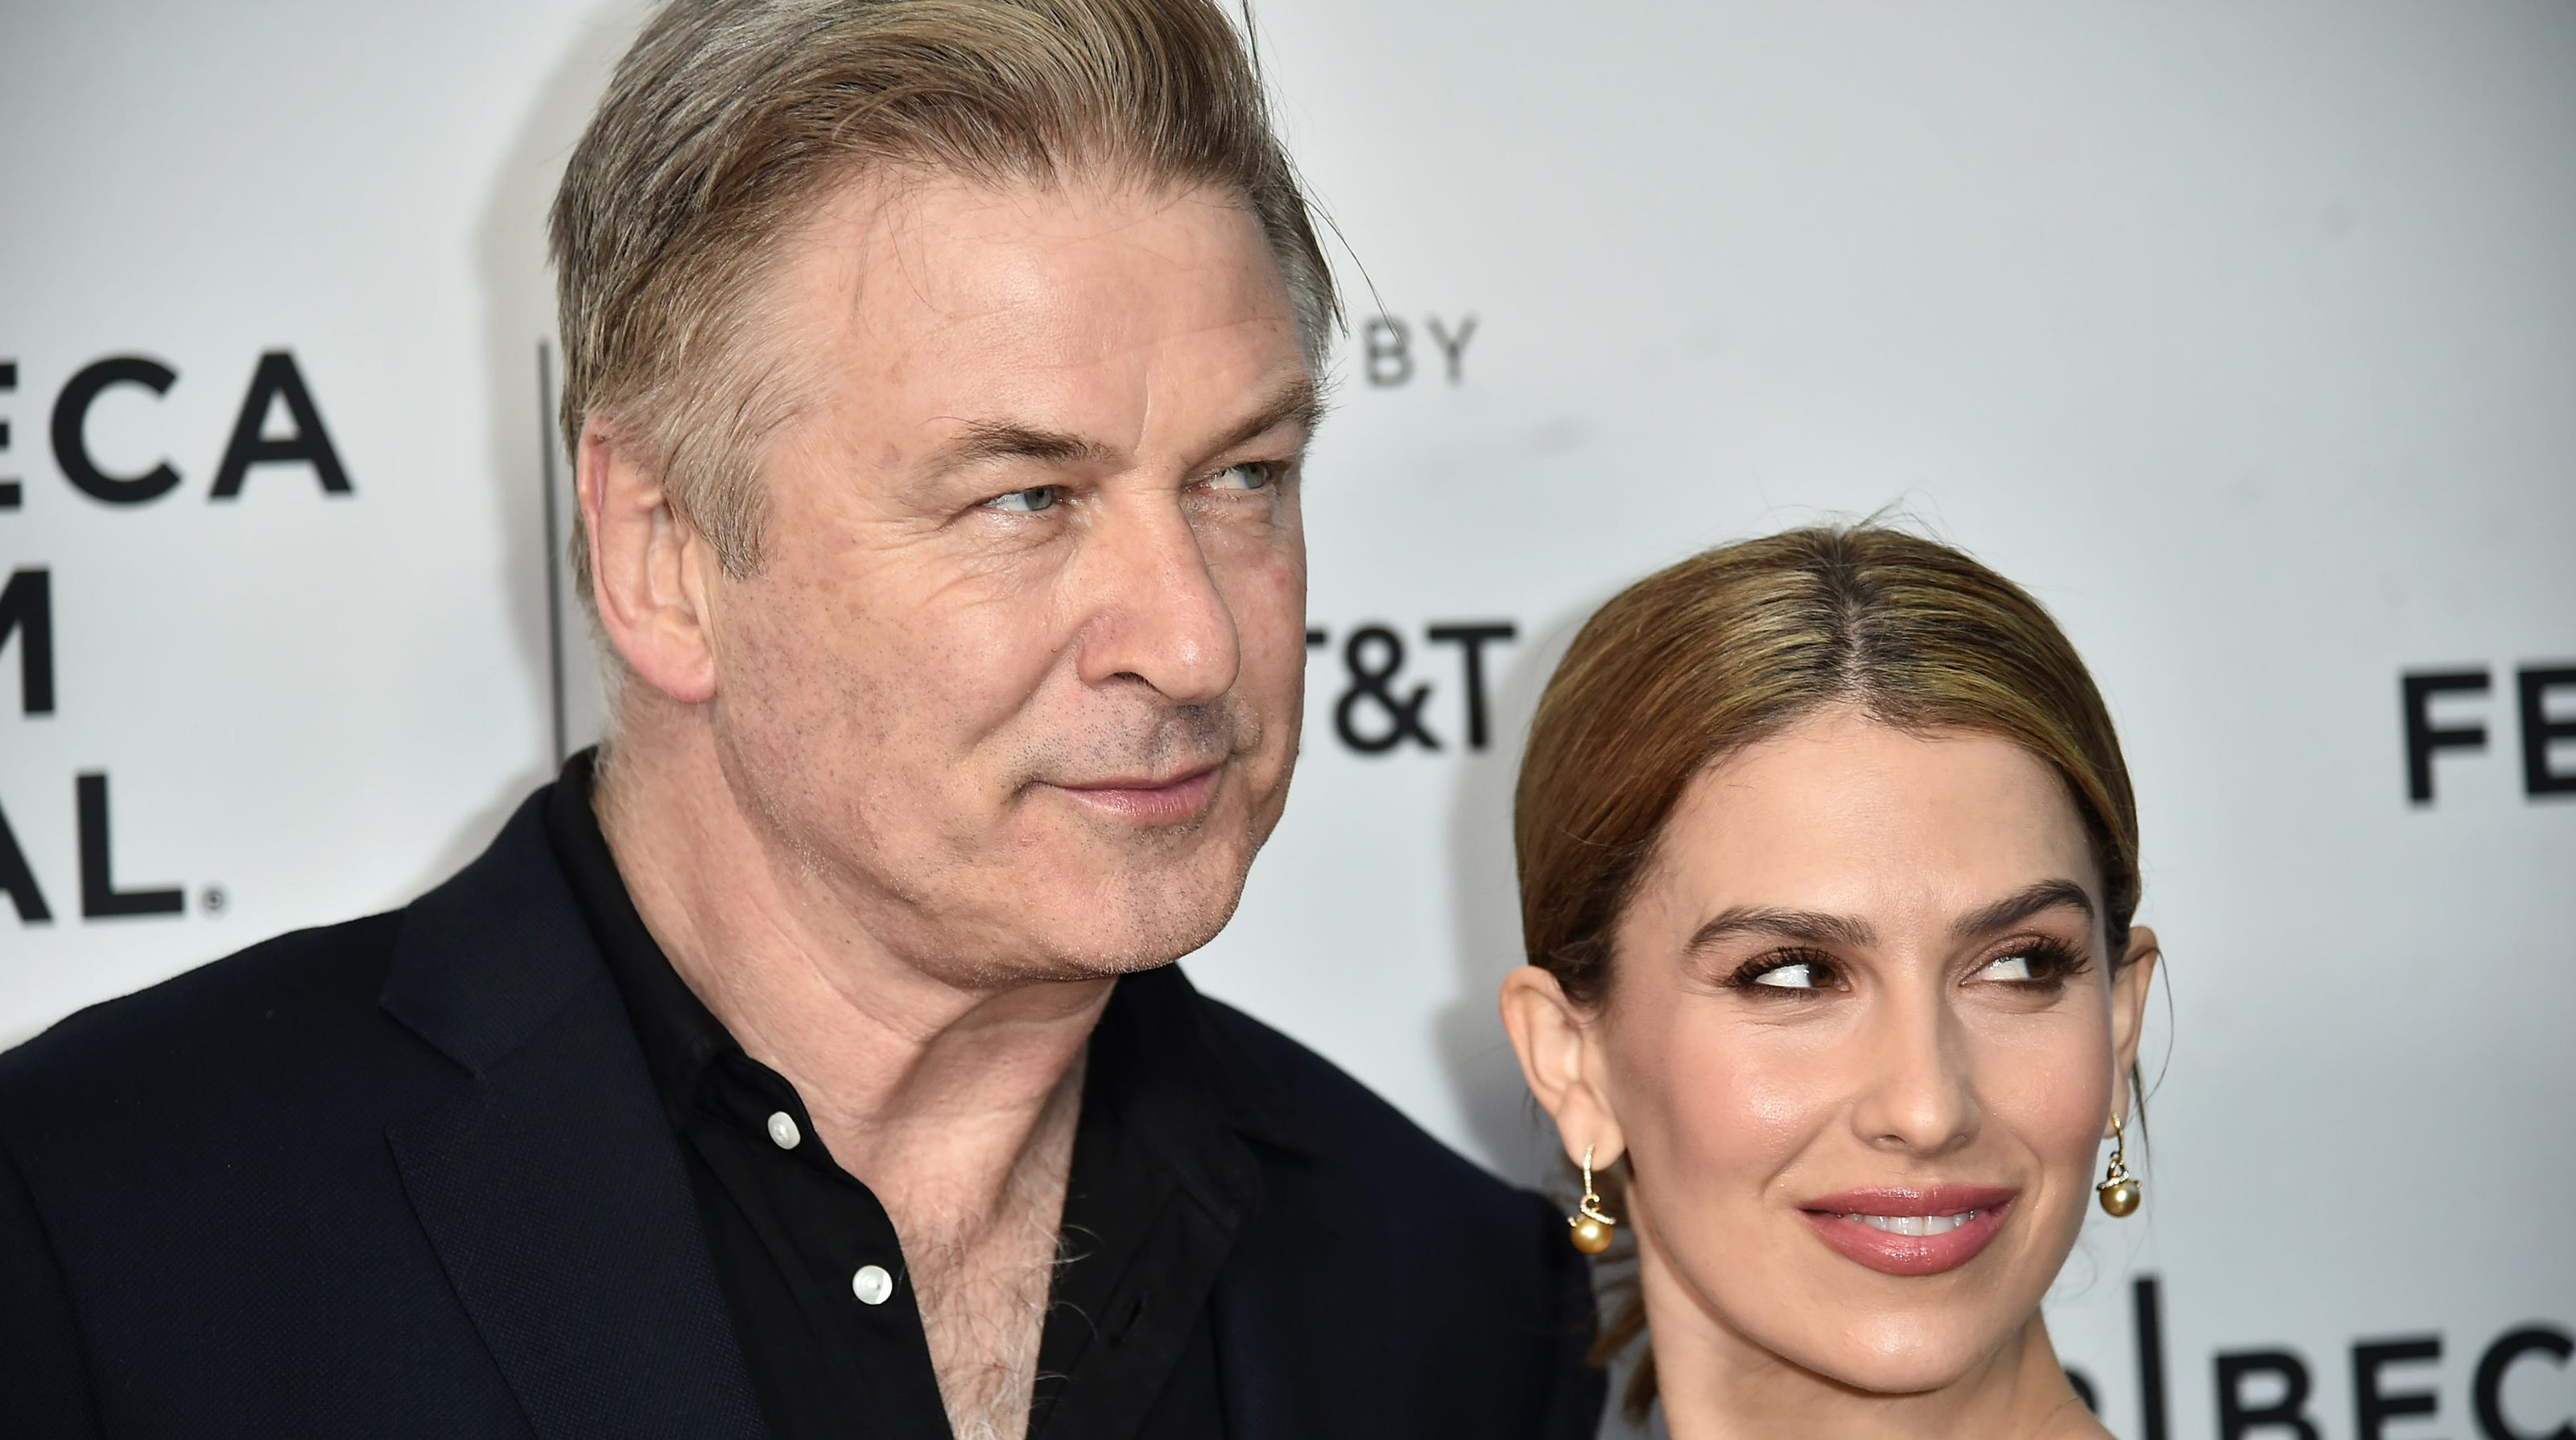 Alec Baldwin Statue Of Liberty Tour From New Jersey Was A Scam